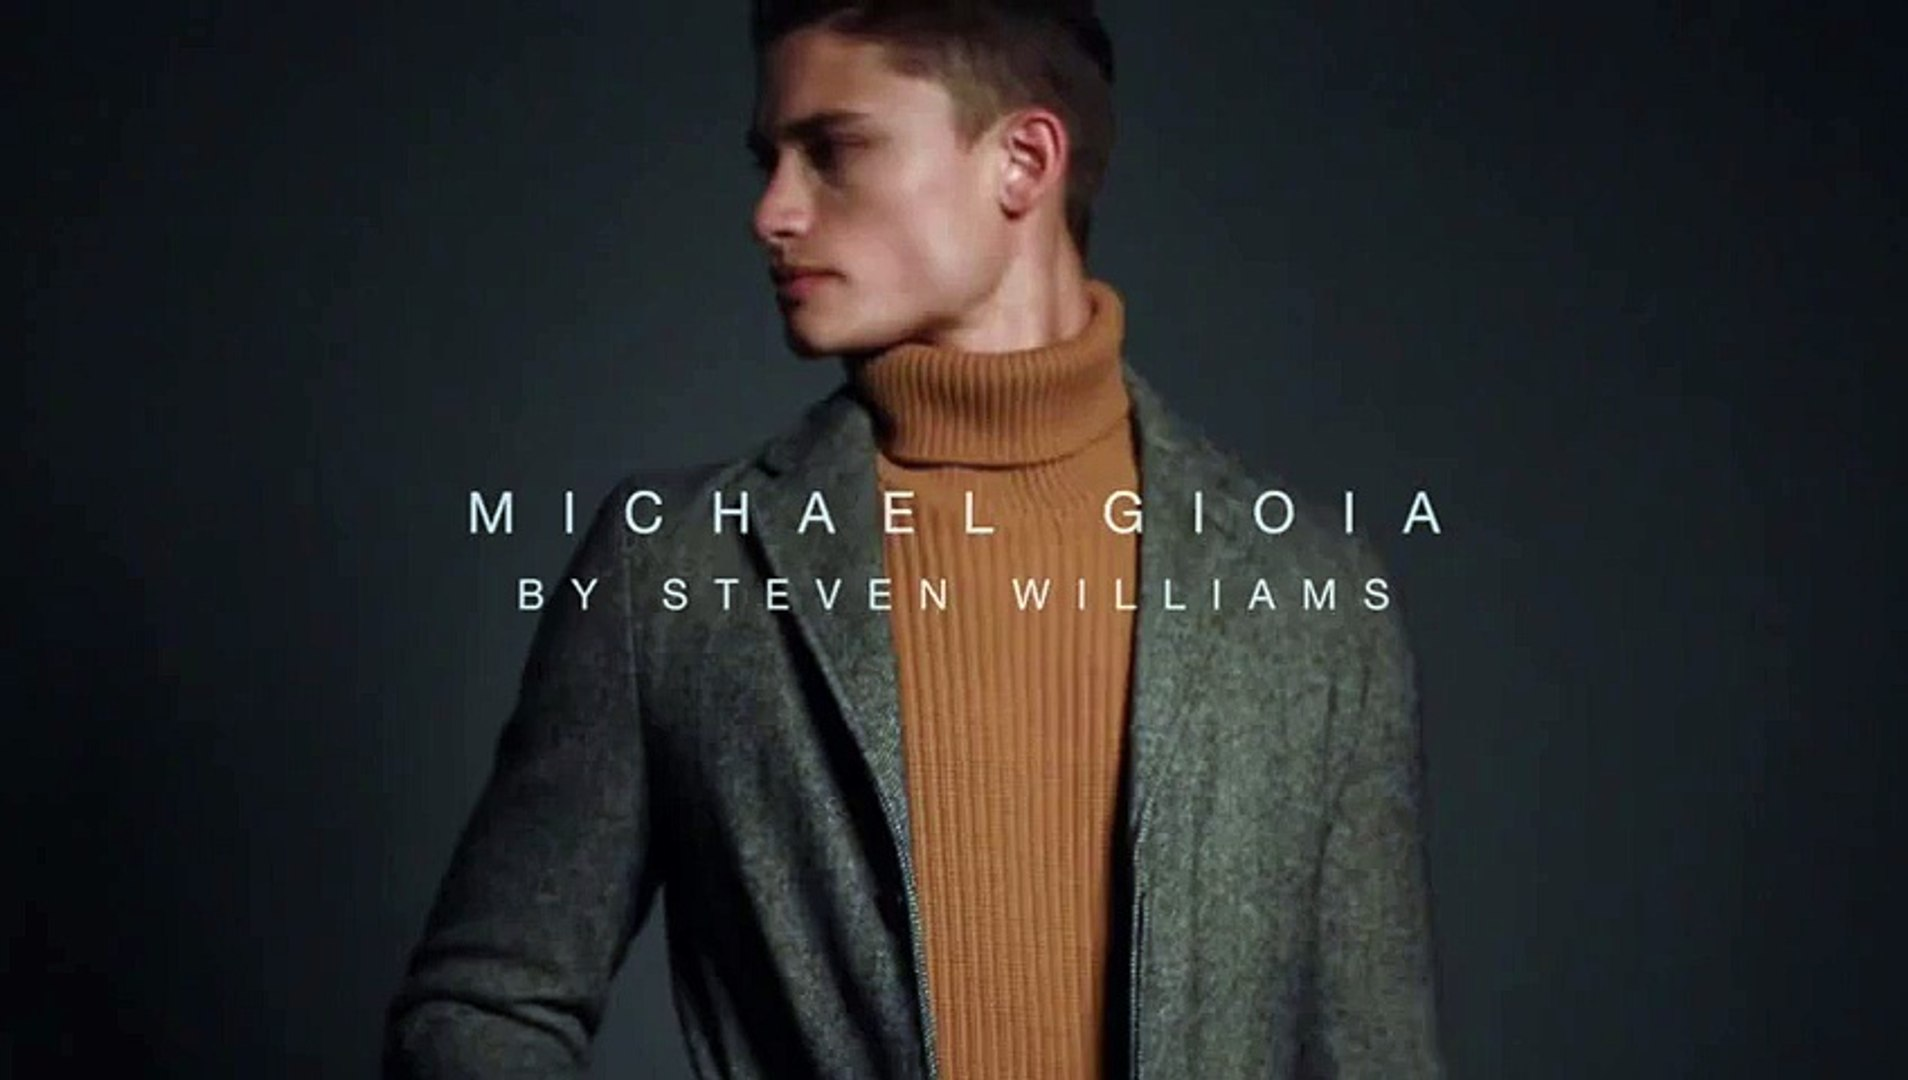 Michael Gioia by Steven Williams !